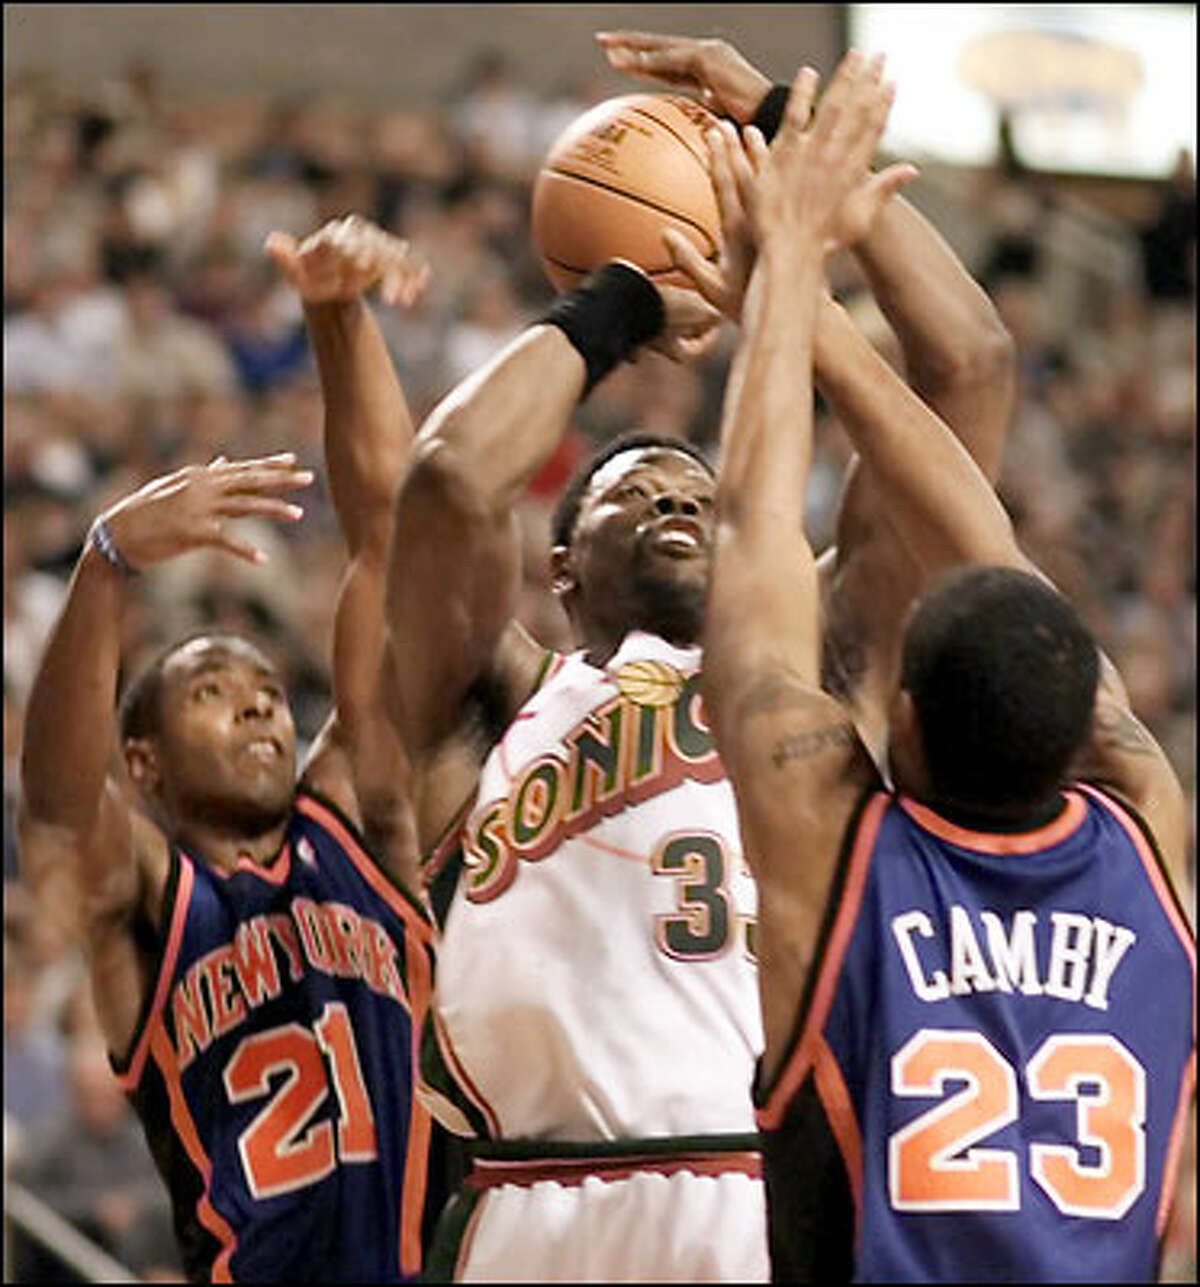 Seattle Supersonics' Patrick Ewing is double teamed by New York Knicks' Charlie Ward and Marcus Camby in the fourthquarter at Key Arena.